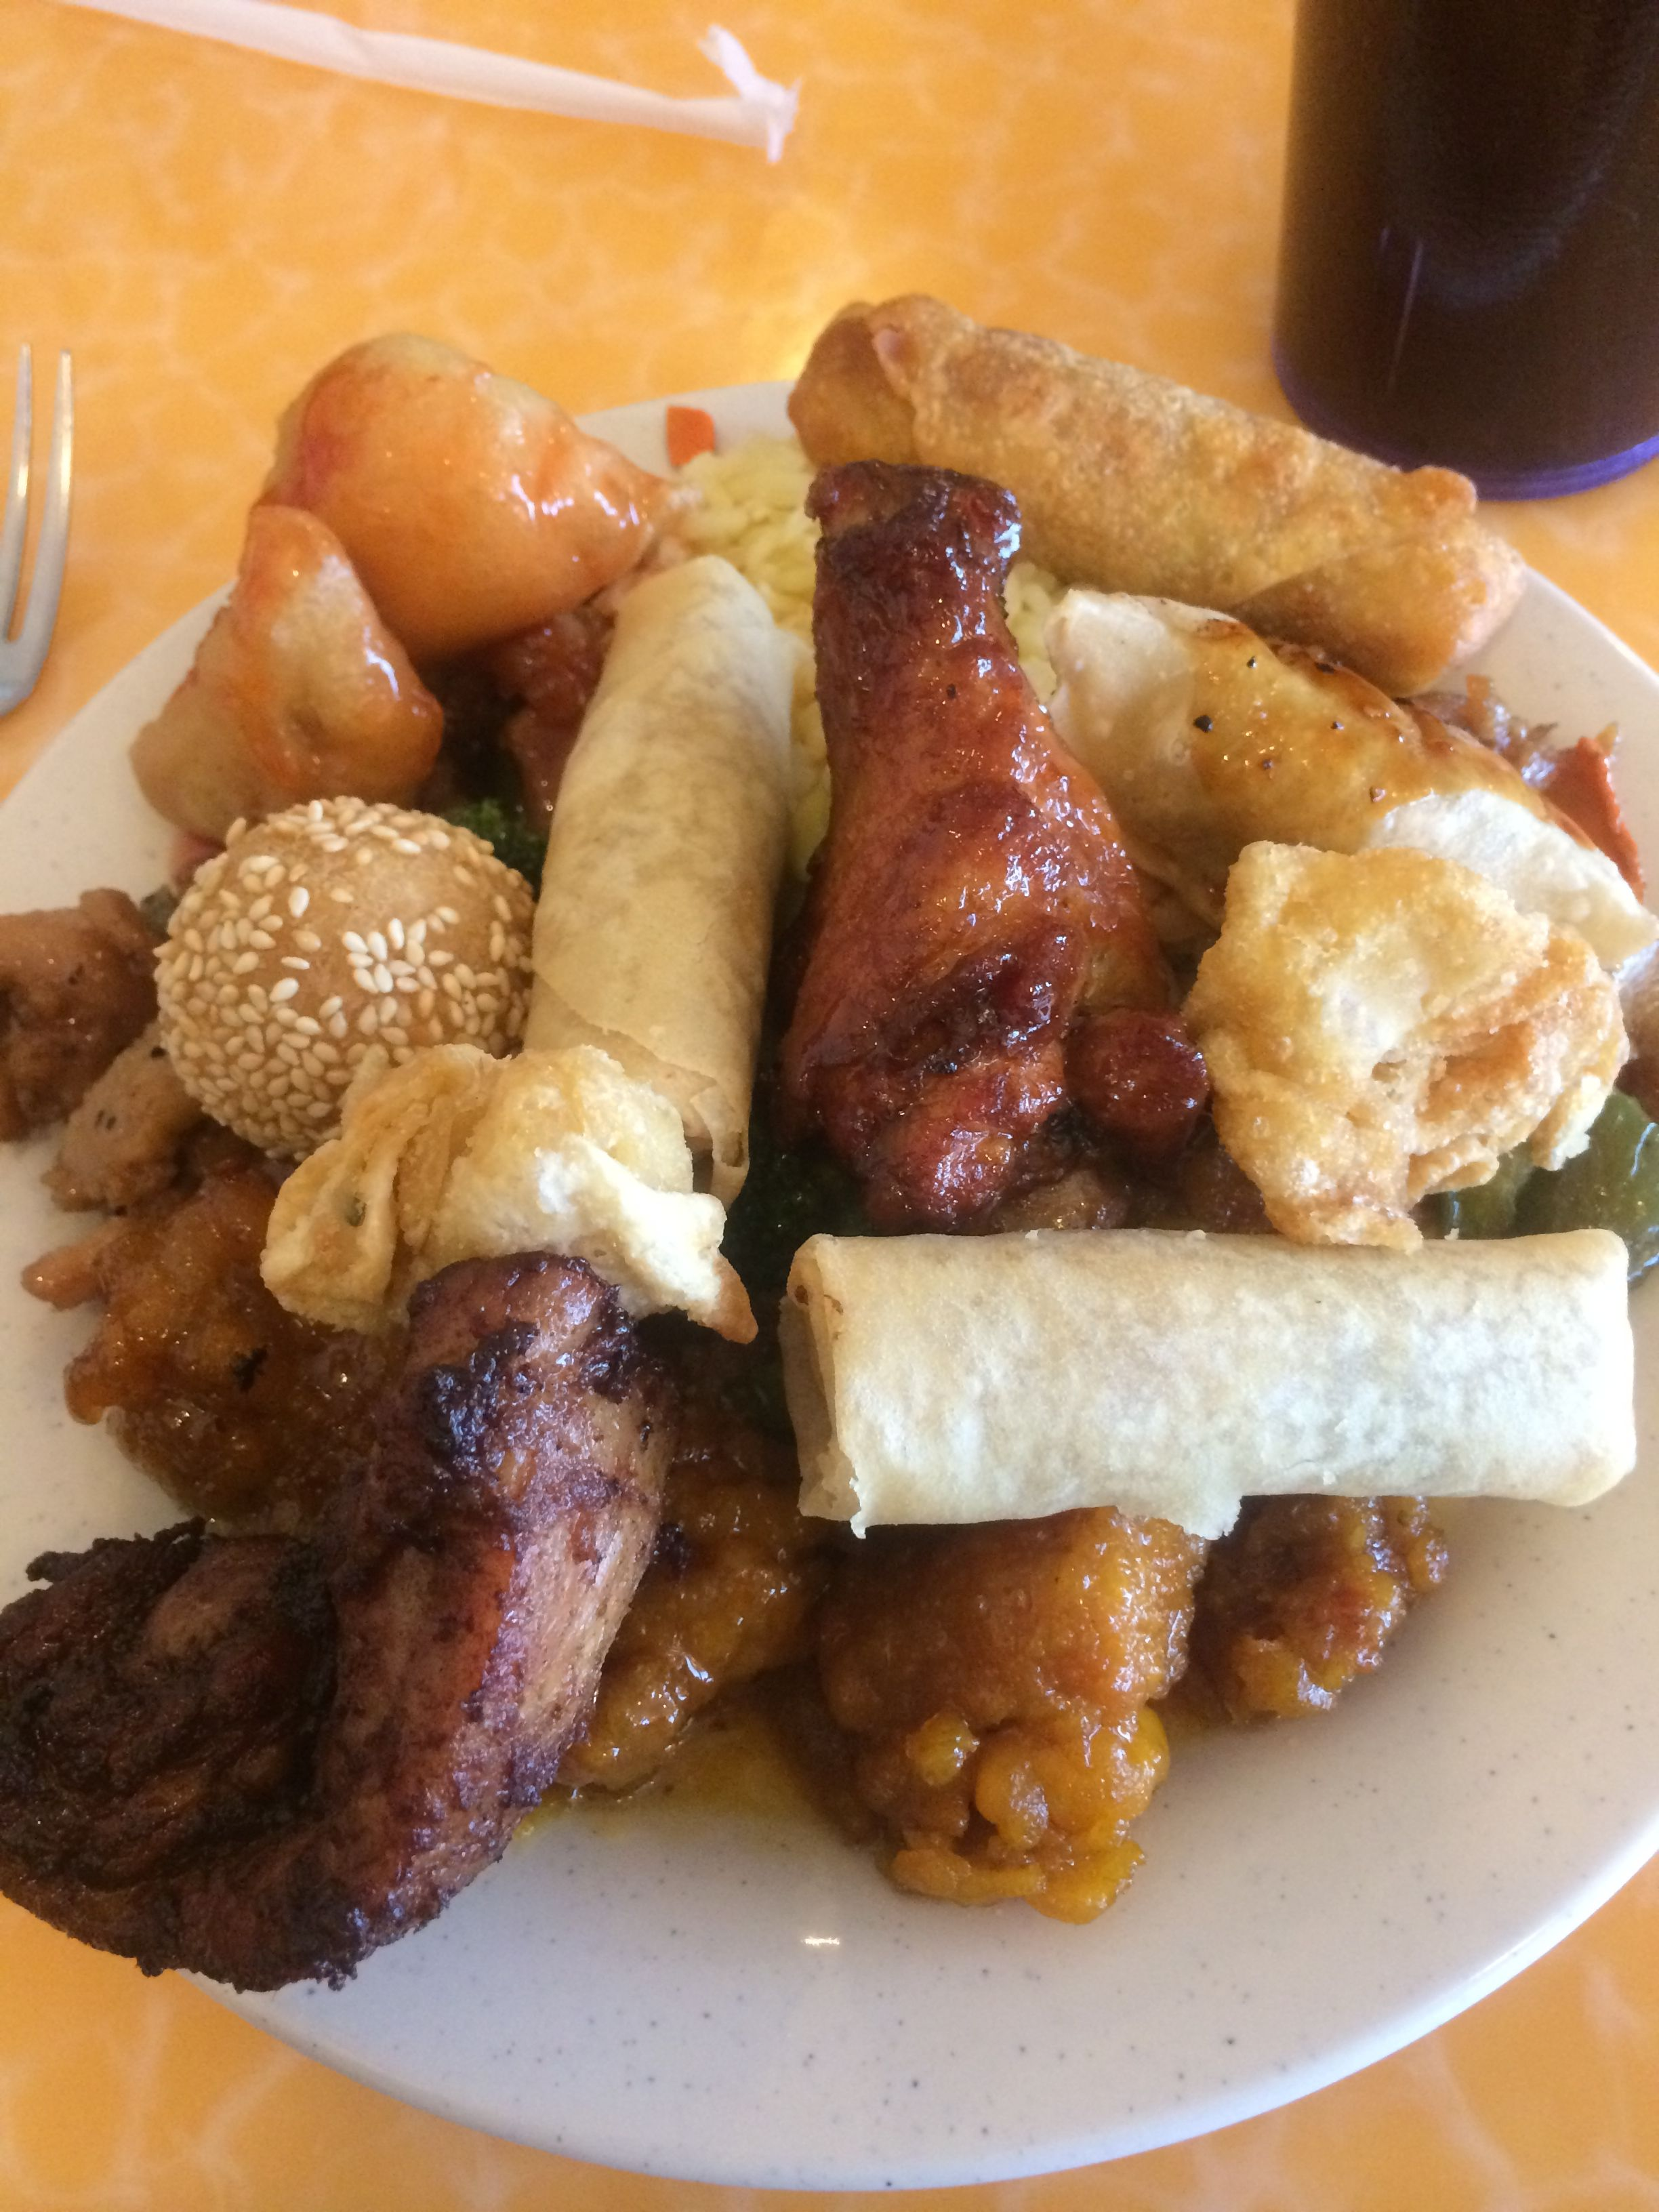 My Plate From Hitting Up The Buffet Line At New China Buffet In